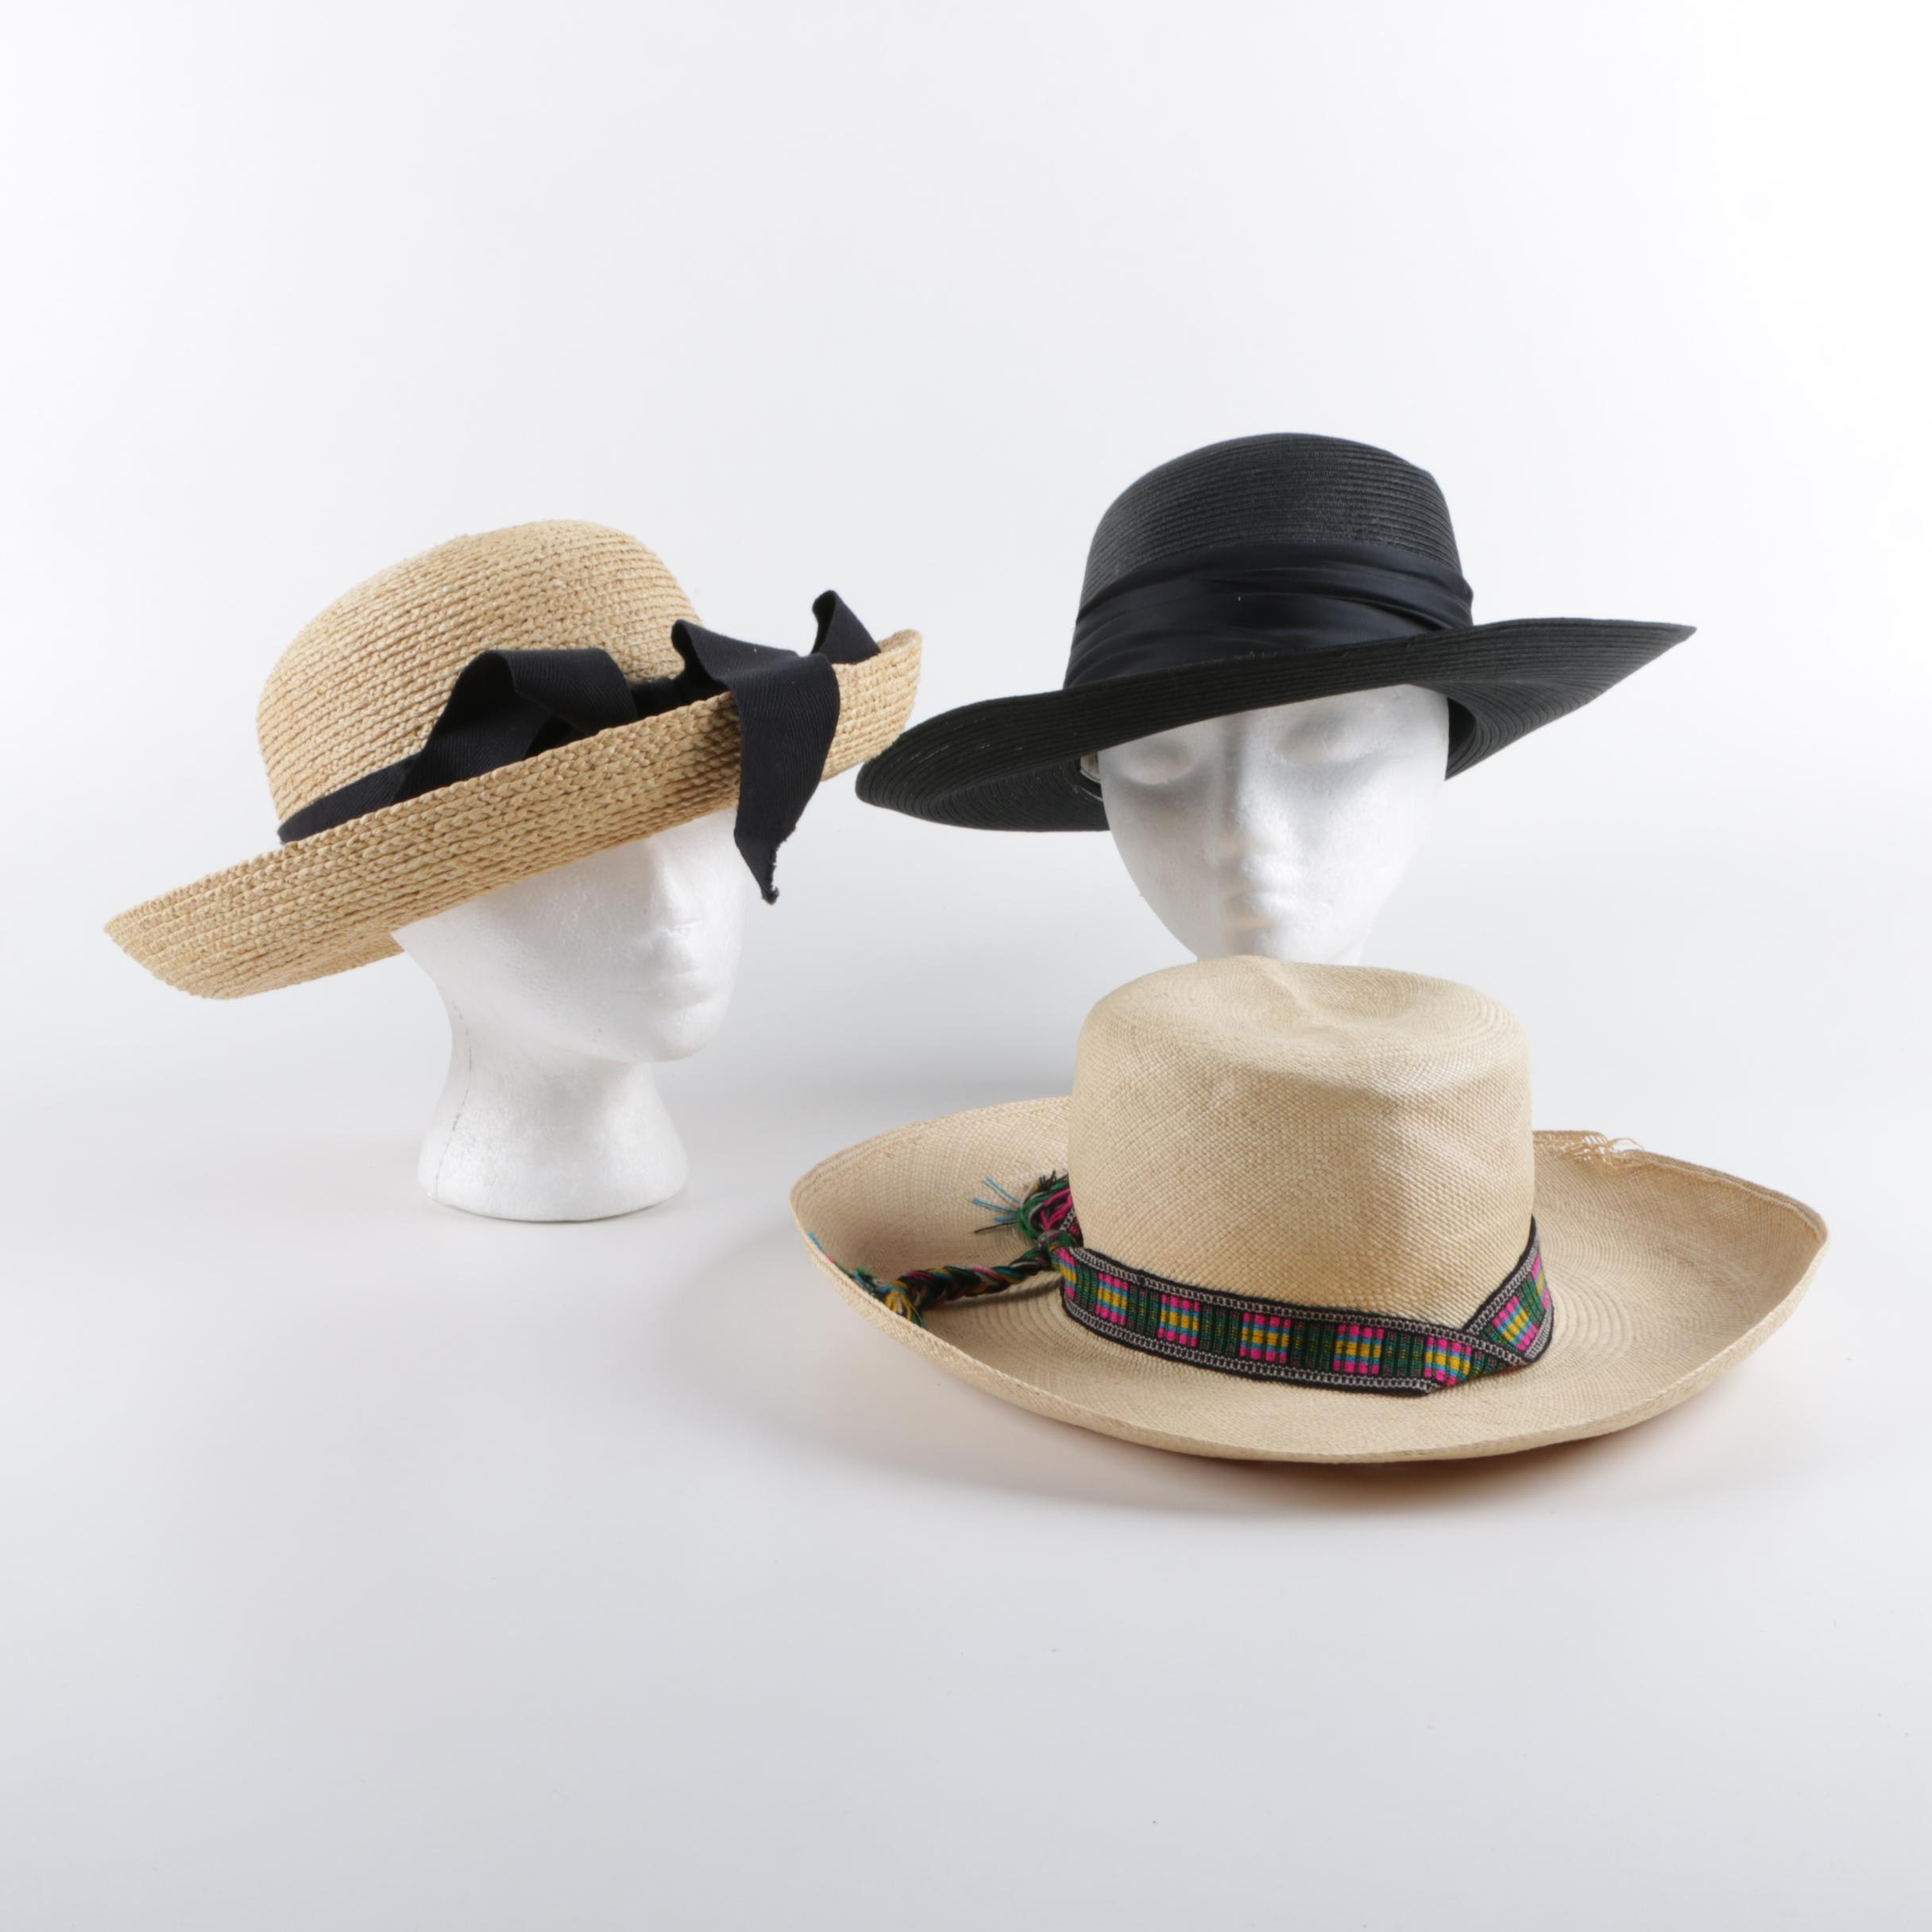 Women's Straw Sun Hats, Including Helen Kaminski